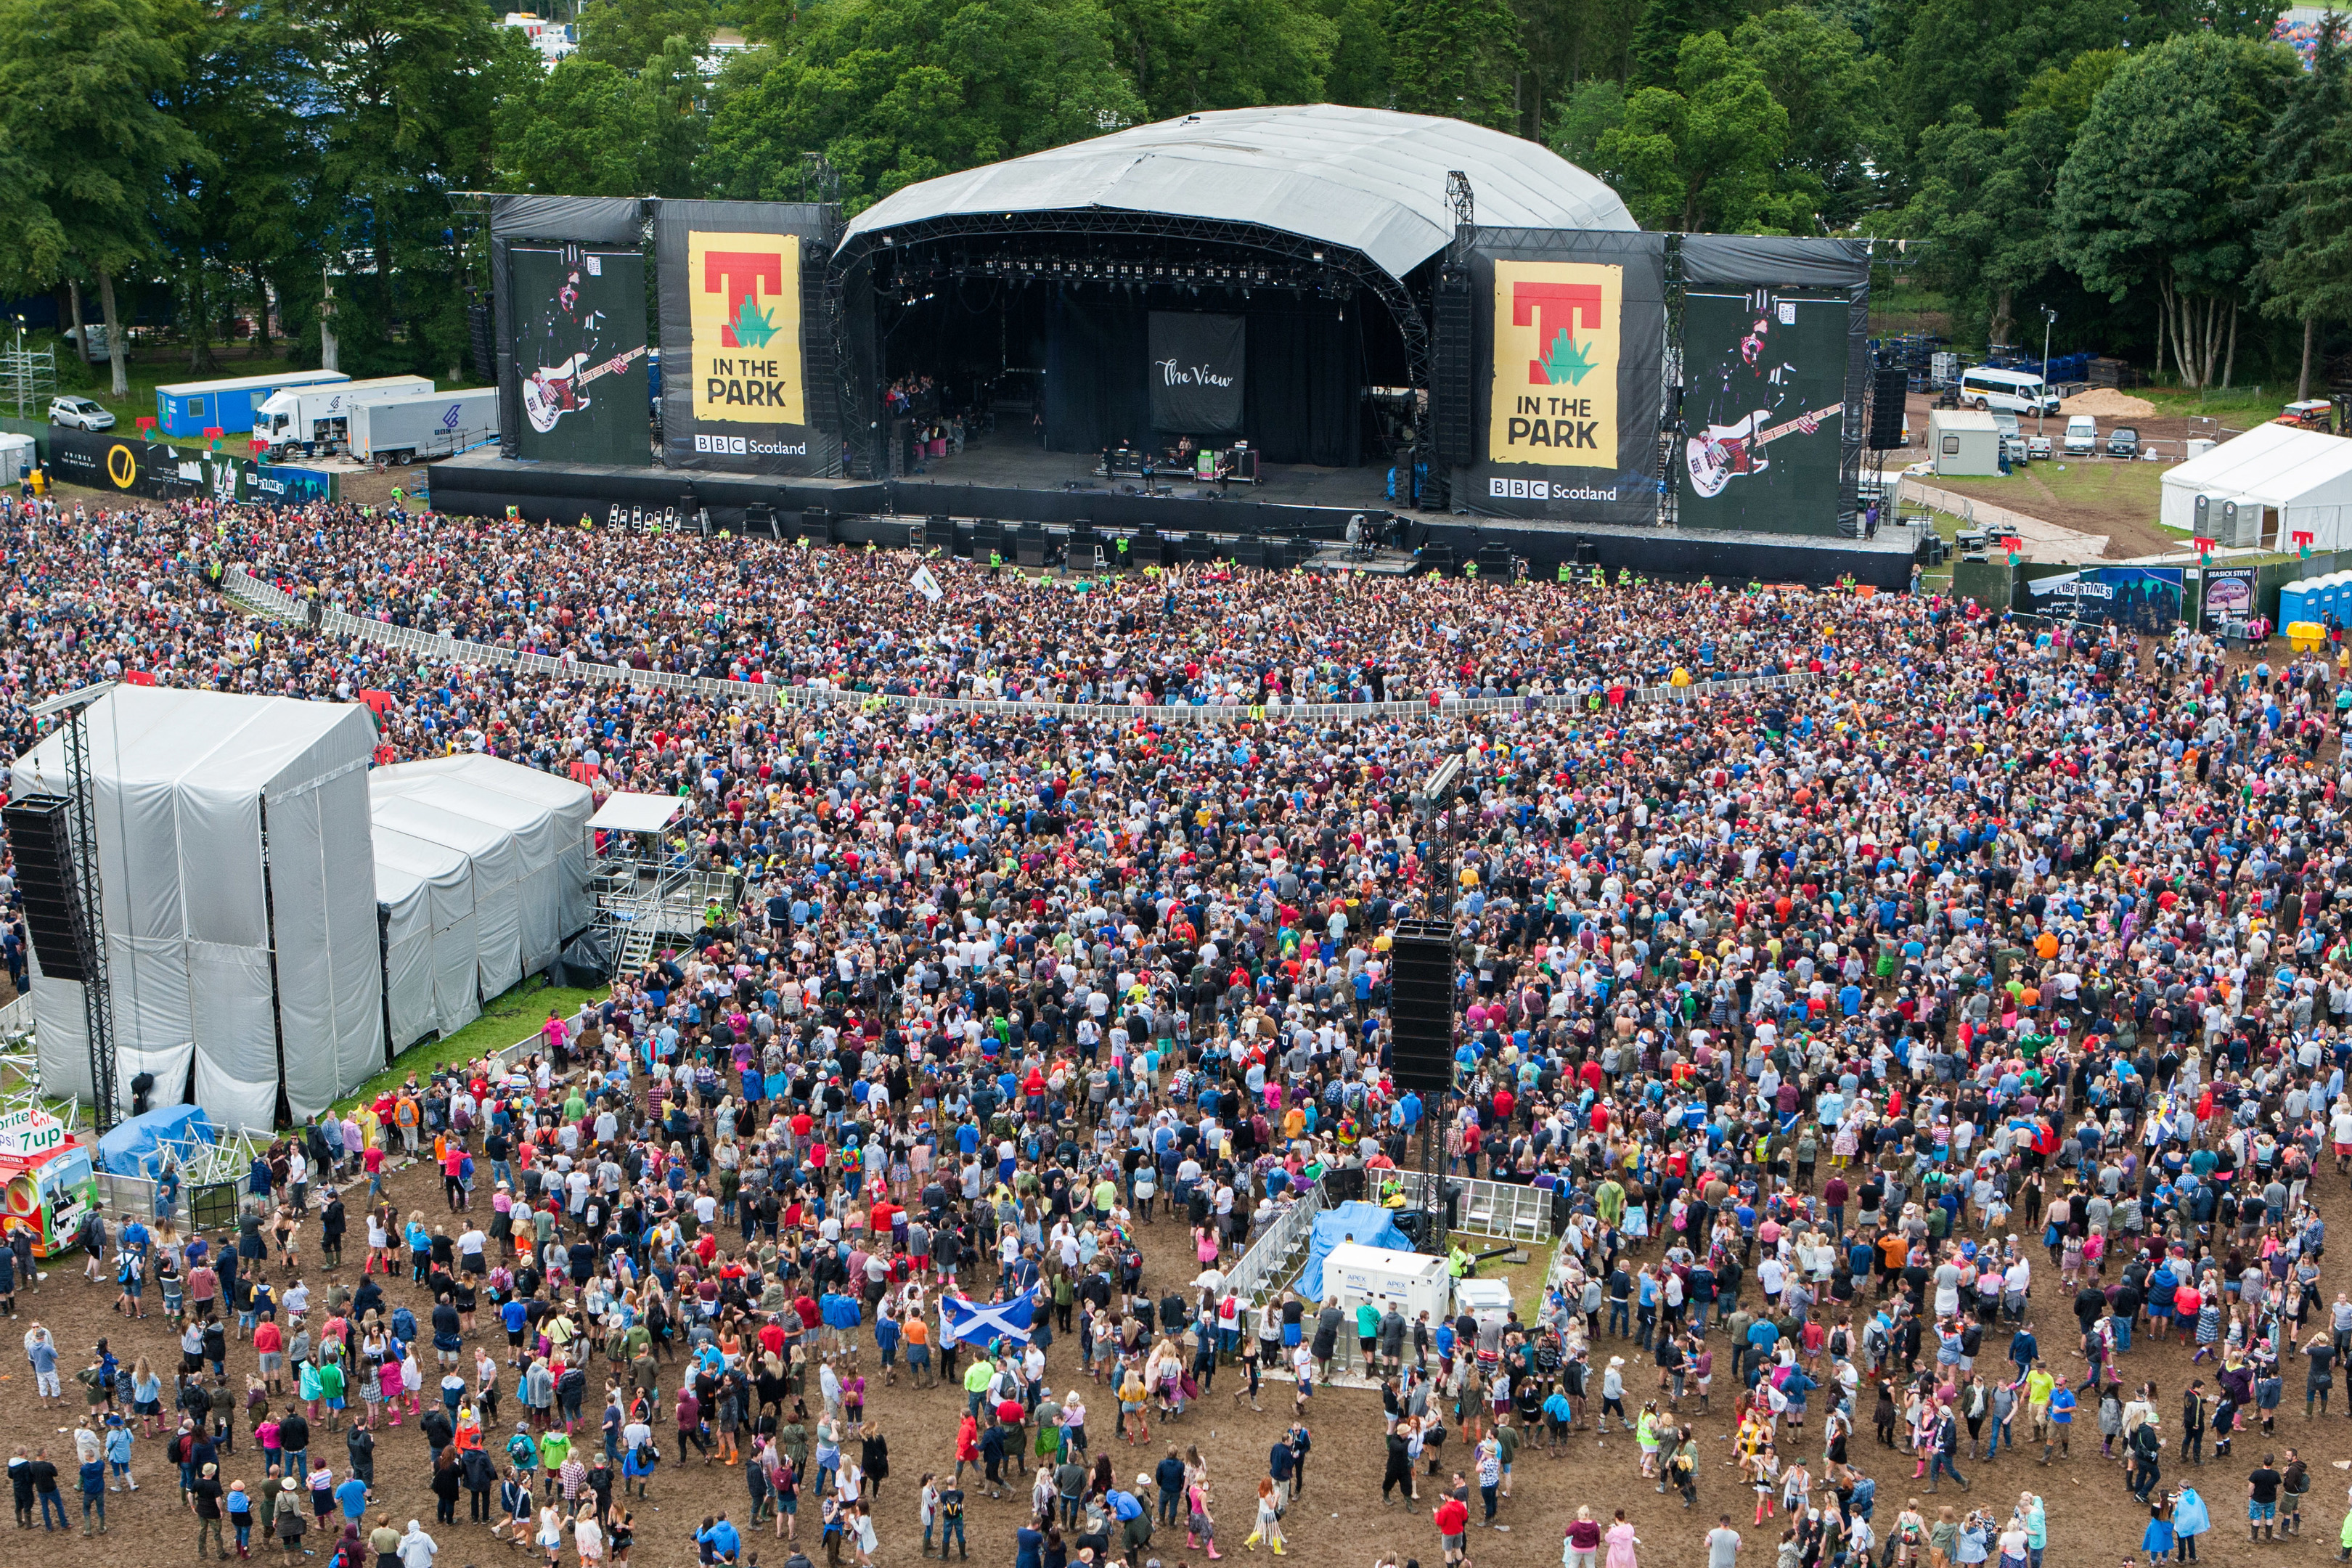 T in the Park at Strathallan, winner of the Best Scottish Festival prize.